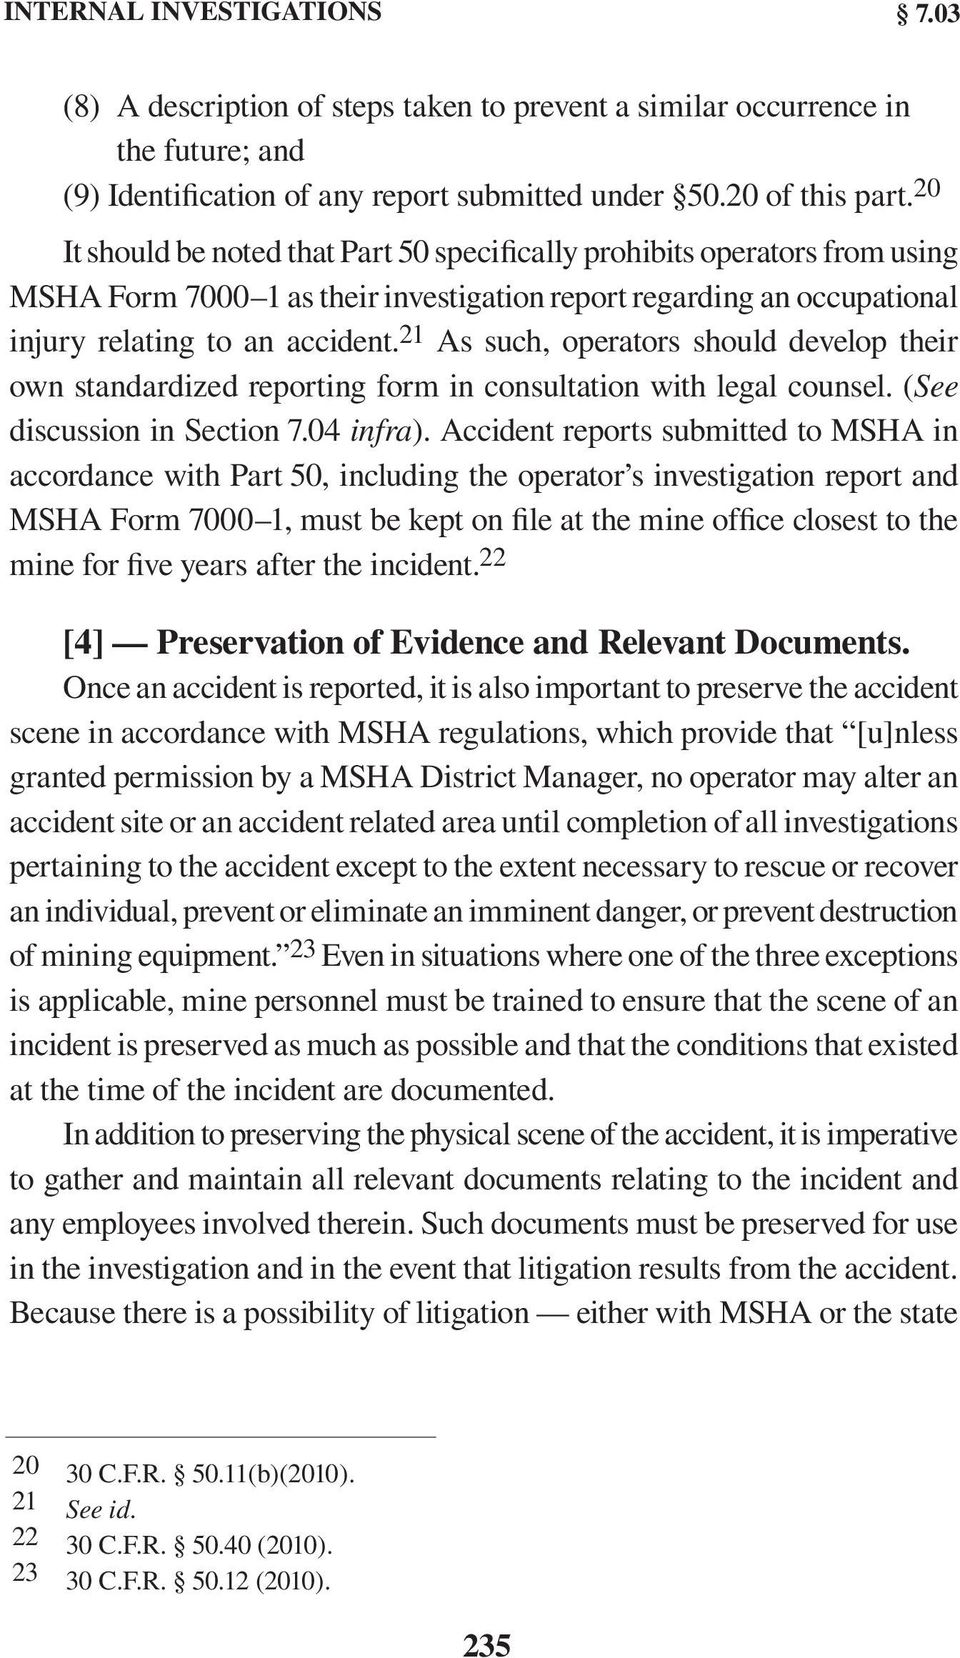 21 As such, operators should develop their own standardized reporting form in consultation with legal counsel. (See discussion in Section 7.04 infra).